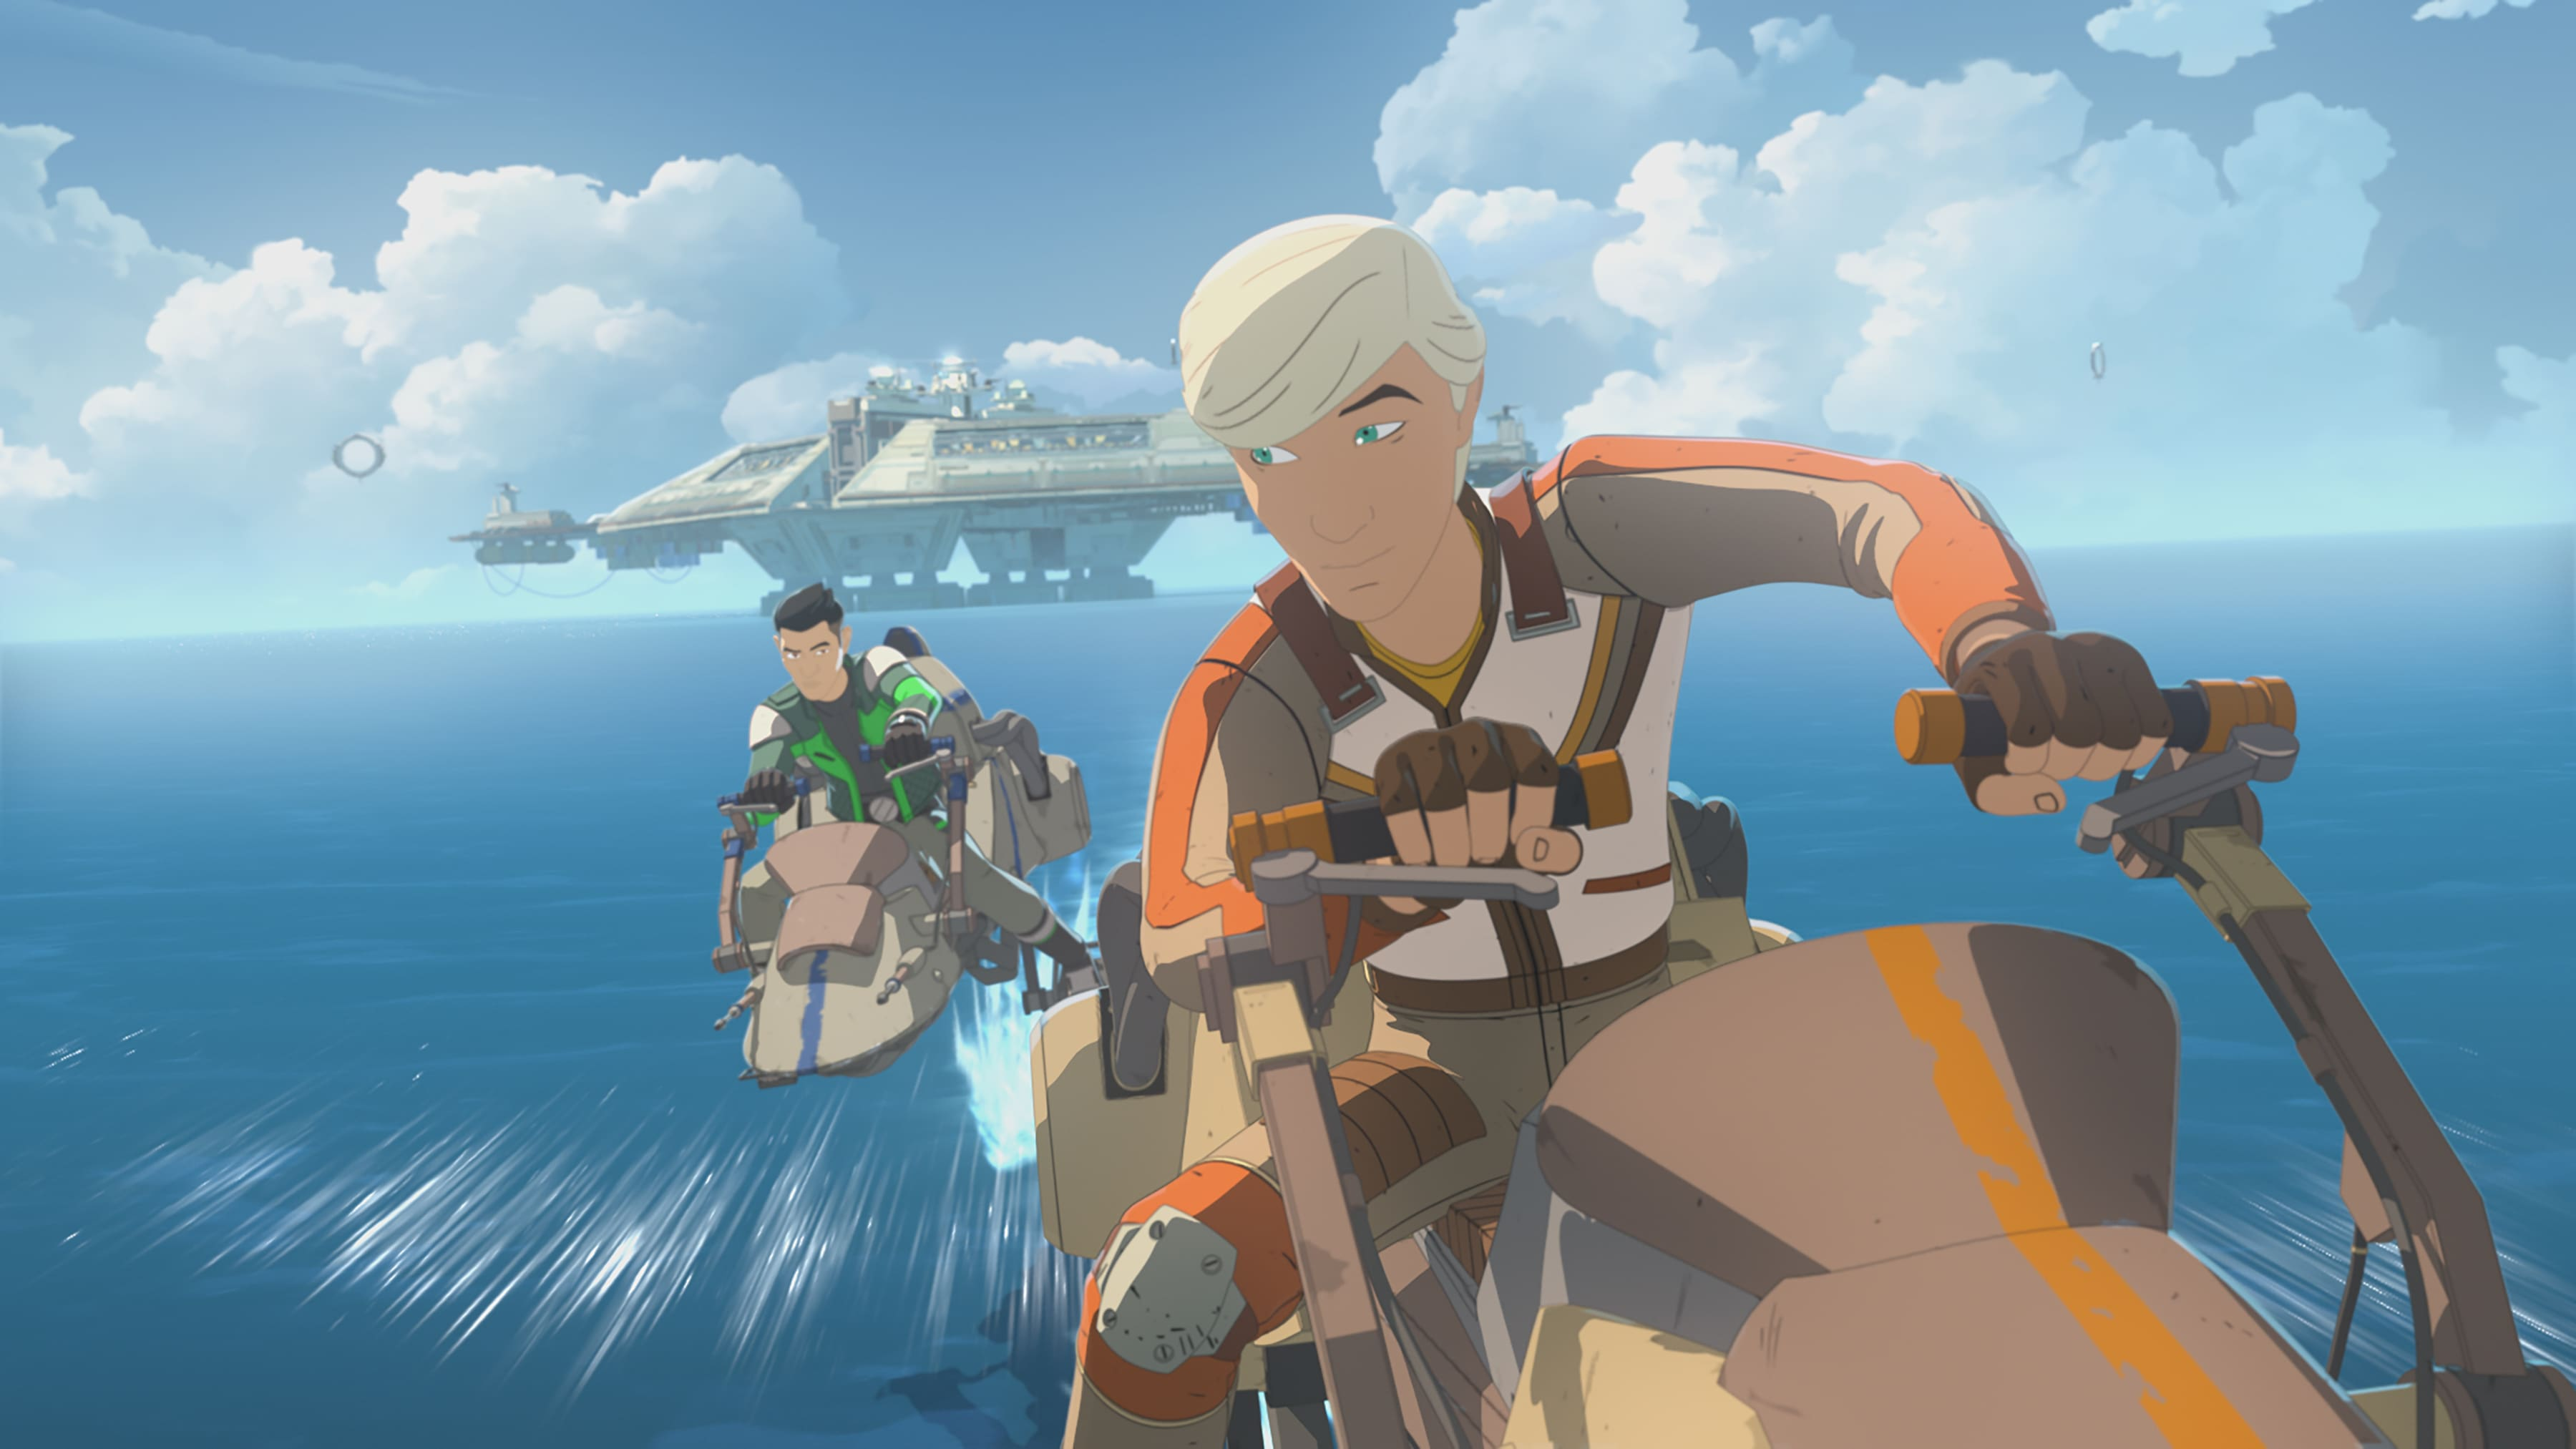 Star Wars Resistance showcase image 01